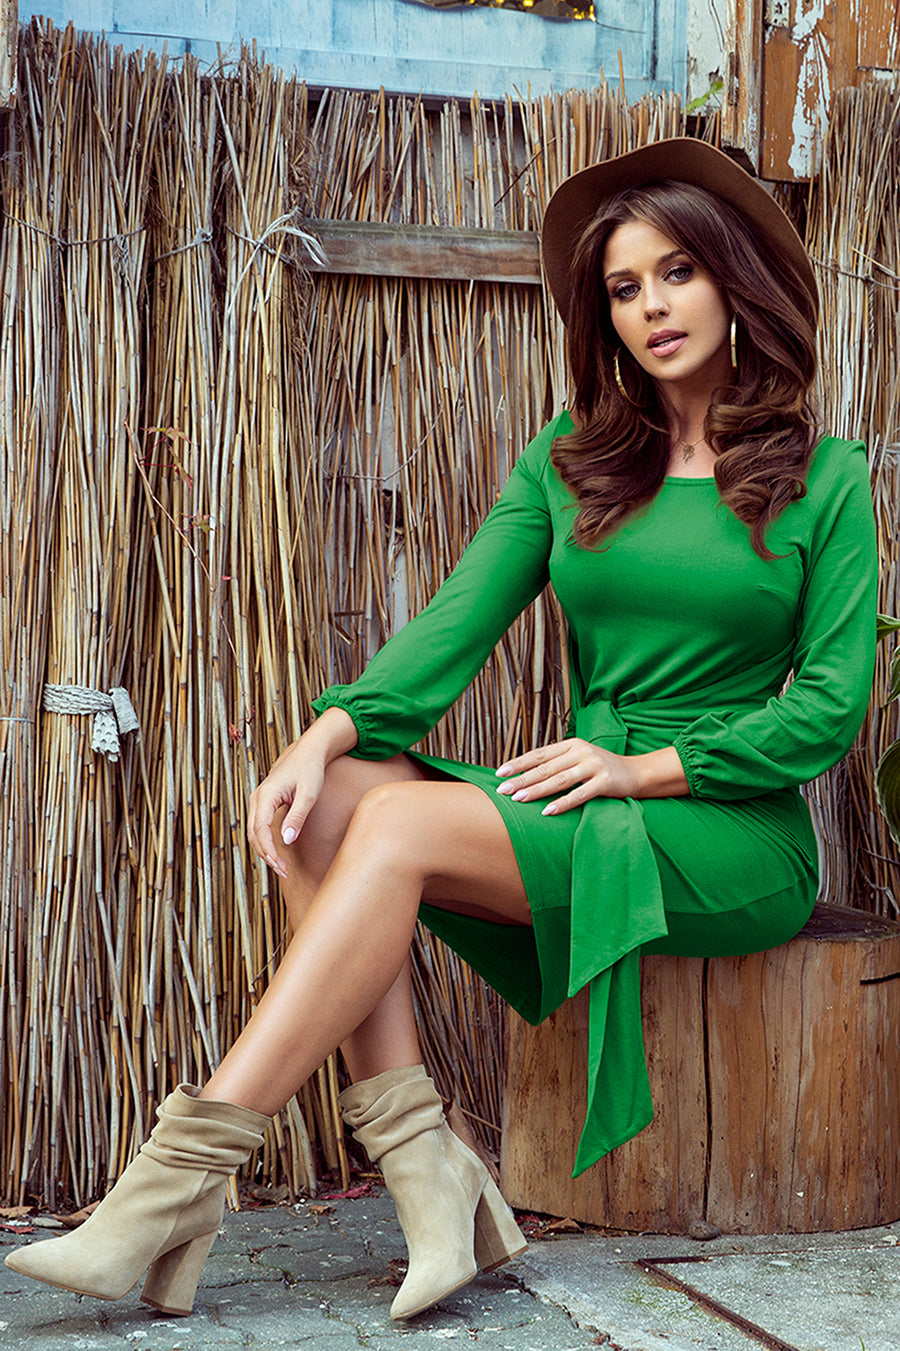 Comfortable Green Dress with Binding at the Waist 1181621